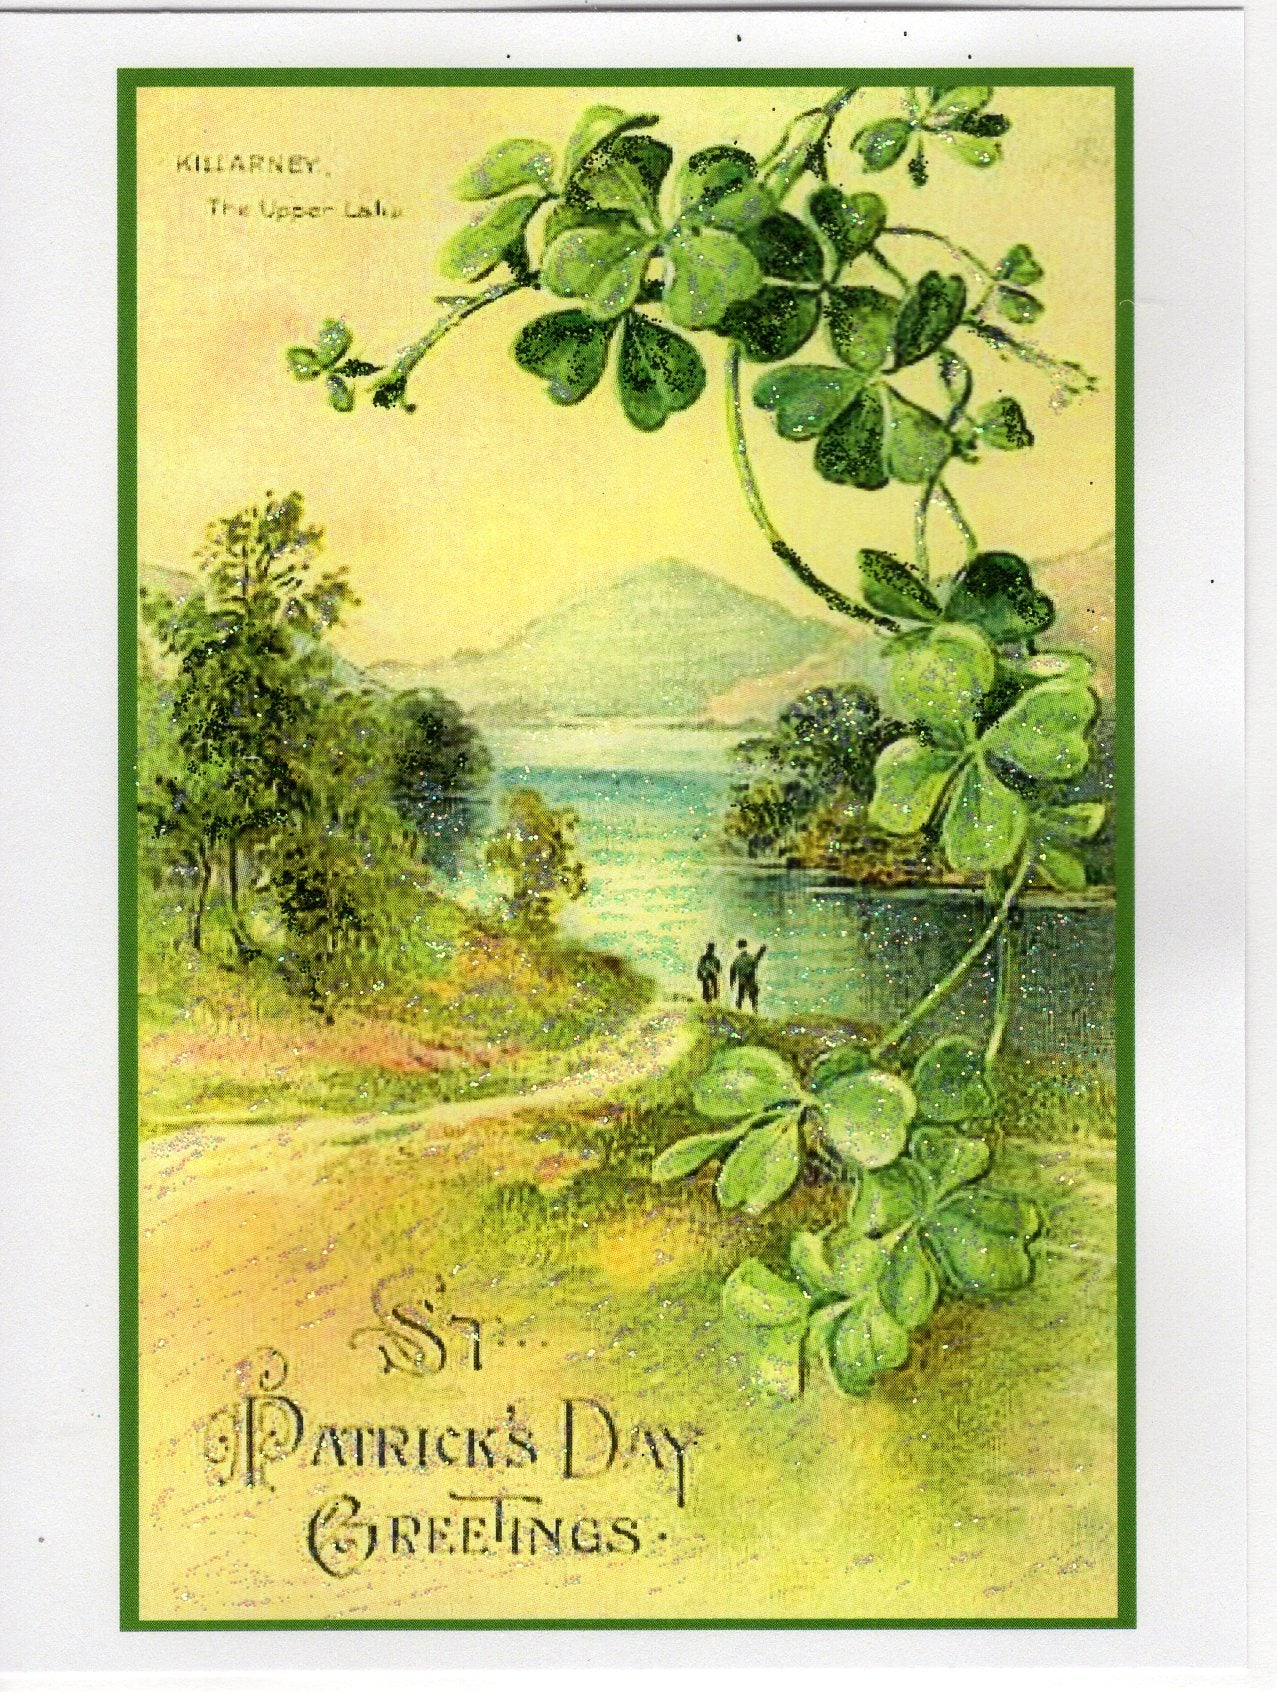 St Patricks Day Greetings Glitter Card The Marble Faun Books Gifts